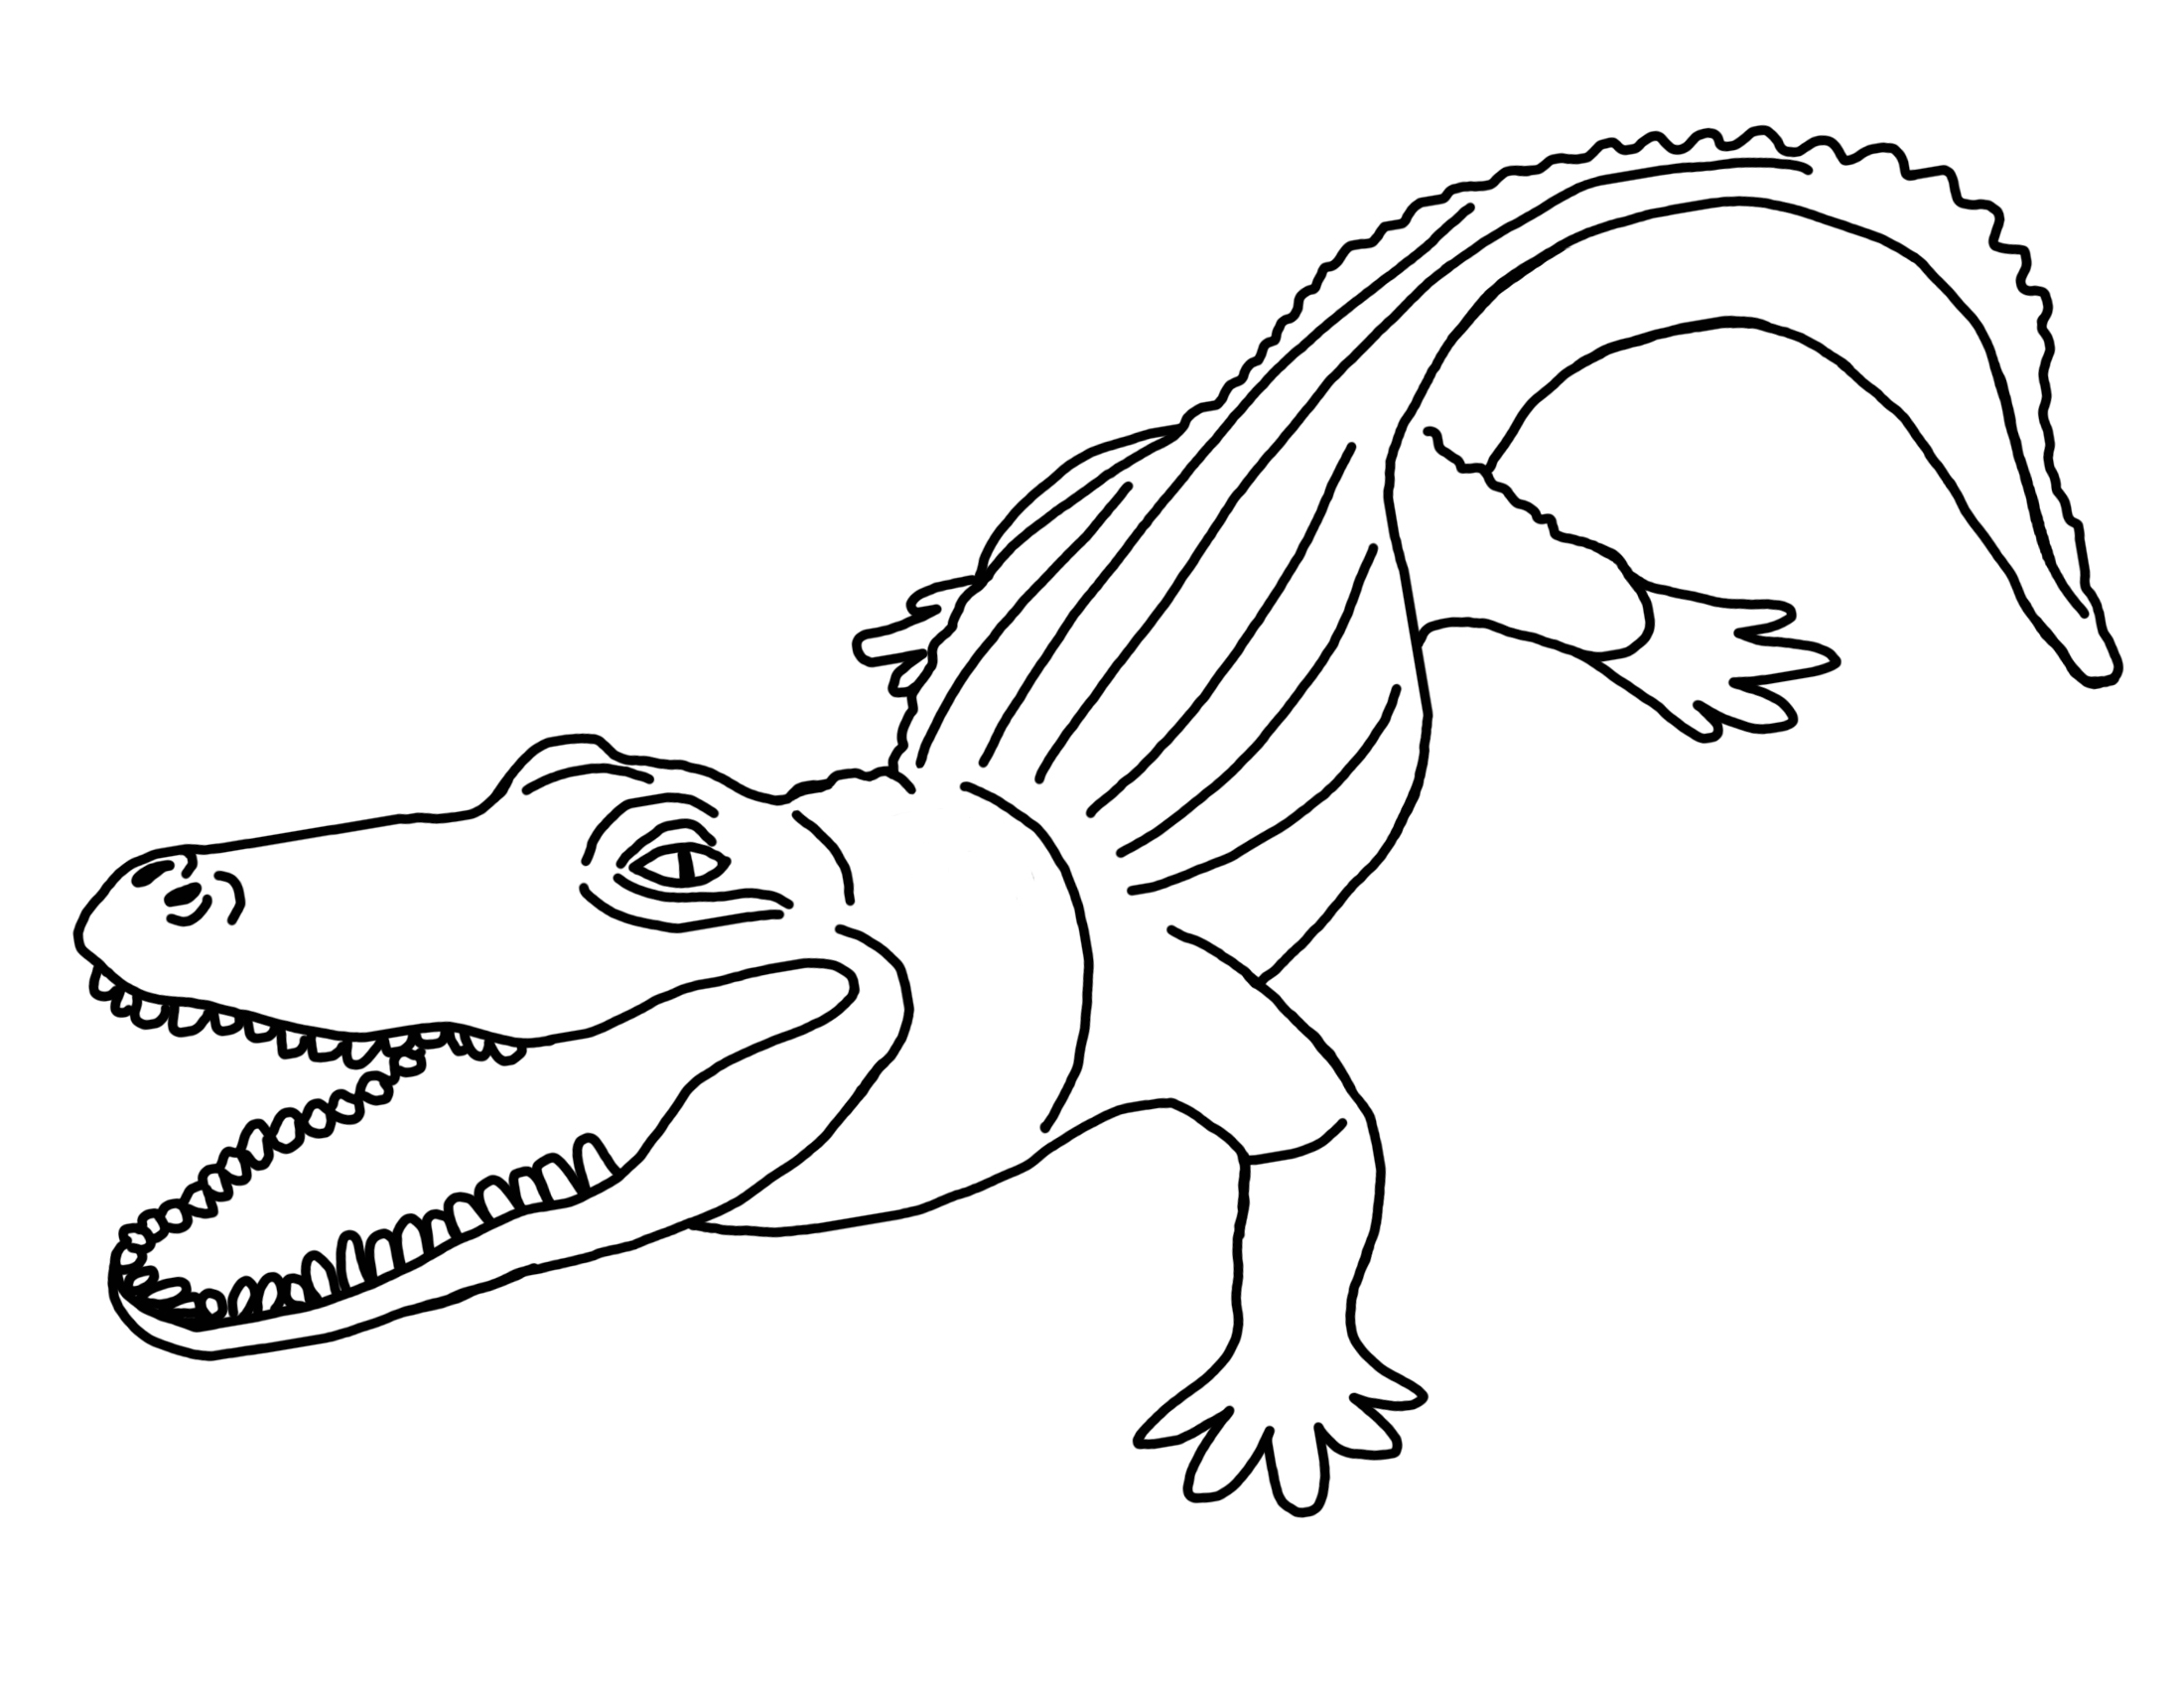 coloring page alligator alligator coloring pages stpetefestorg page alligator coloring